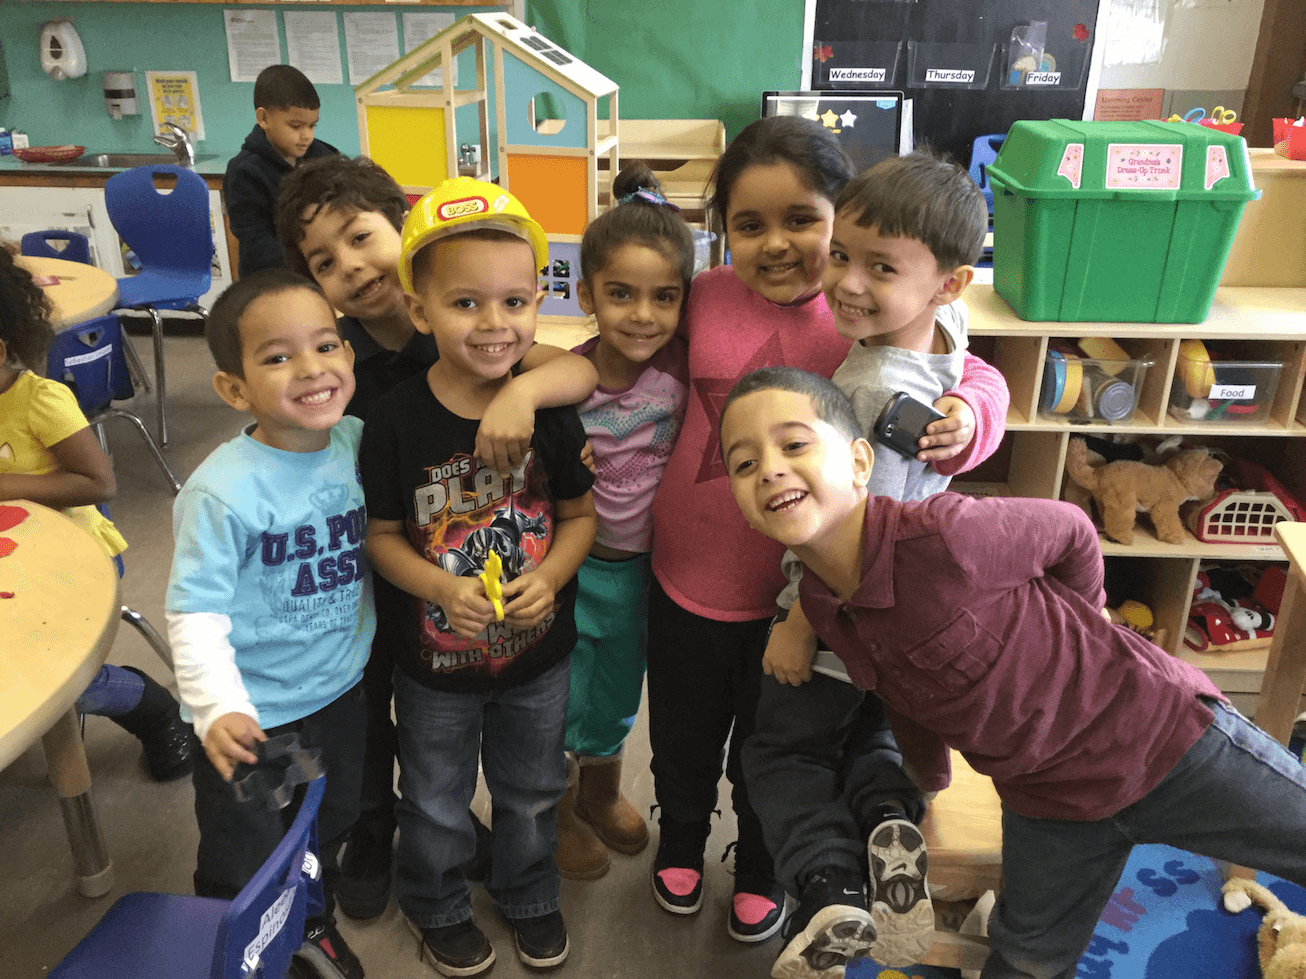 Commonwealth Grants Highest-Level Designation for VOC's Holyoke Morgan and Sullivan School Preschool Programs